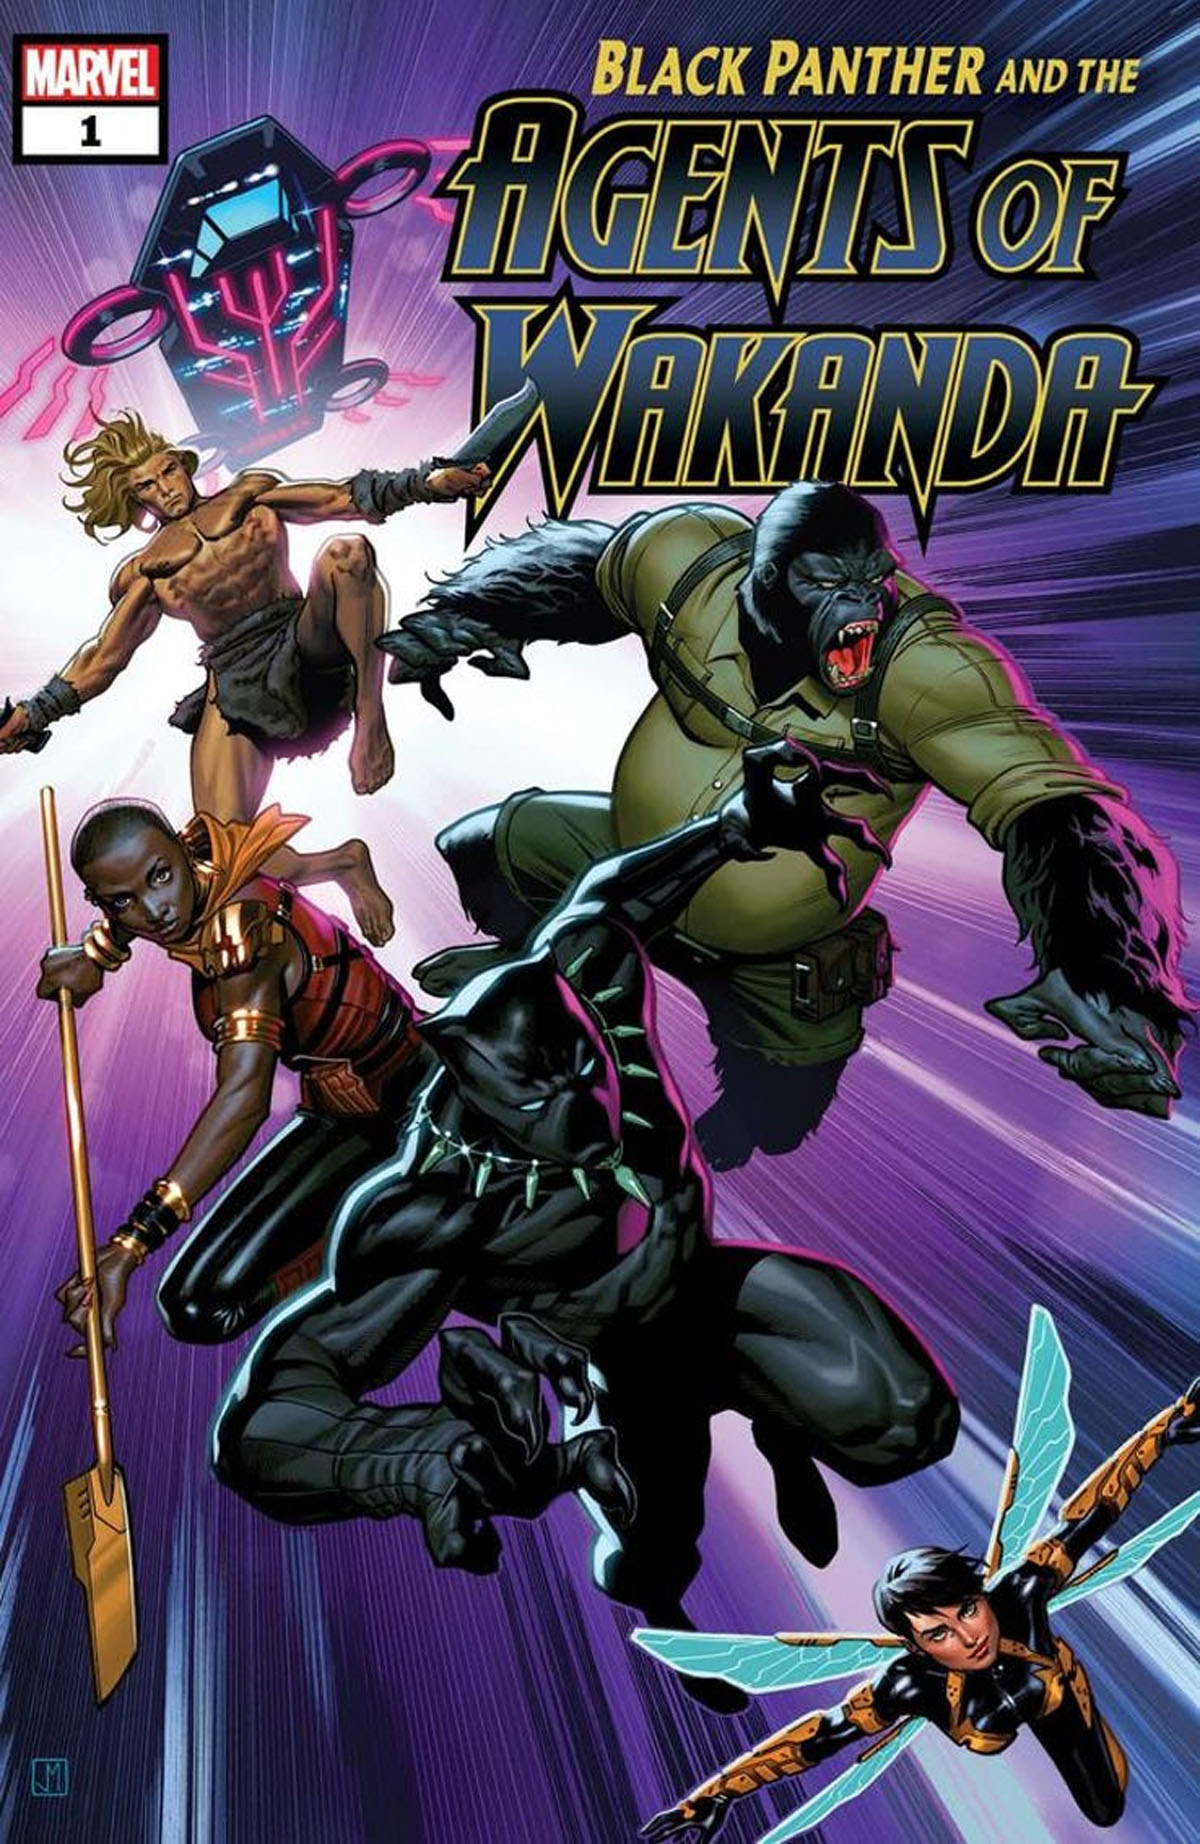 Black Panther and the Agents of Wakanda #1 cover a